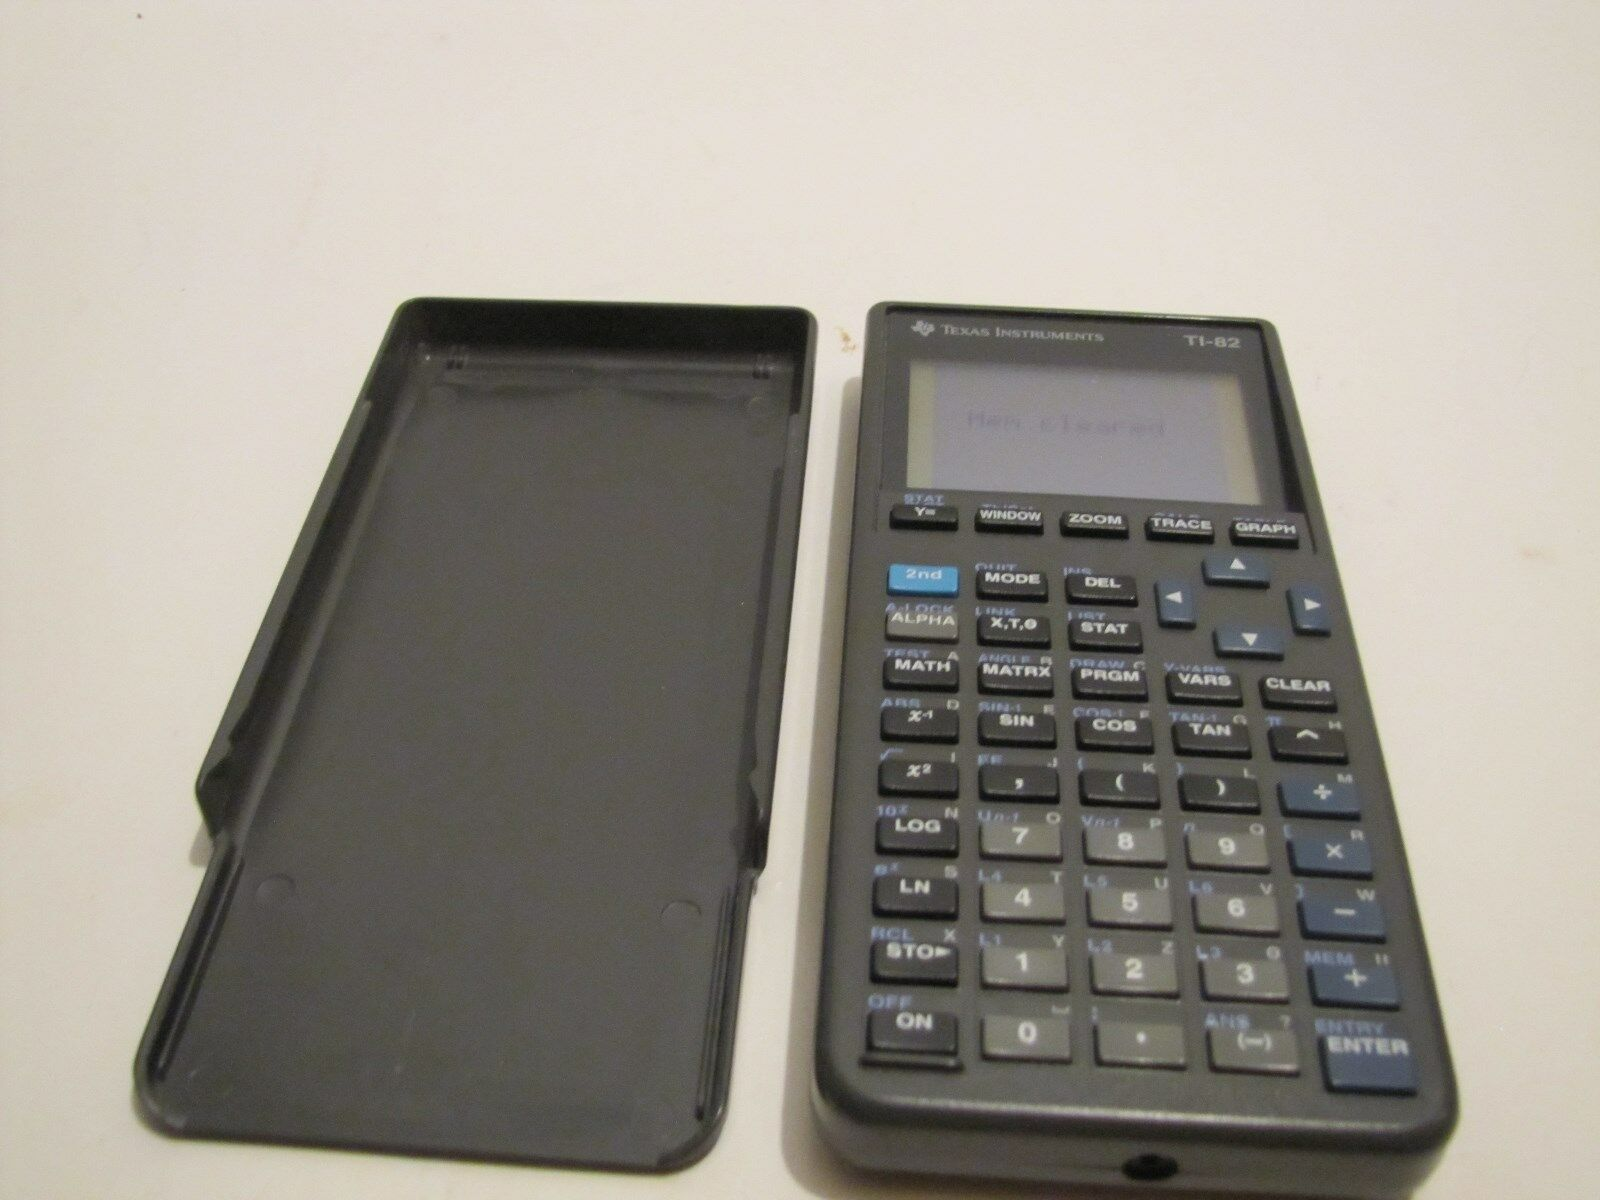 TEXAS INSTRUMENTS TI-82 GRAPHING CALCULATOR WORKS.